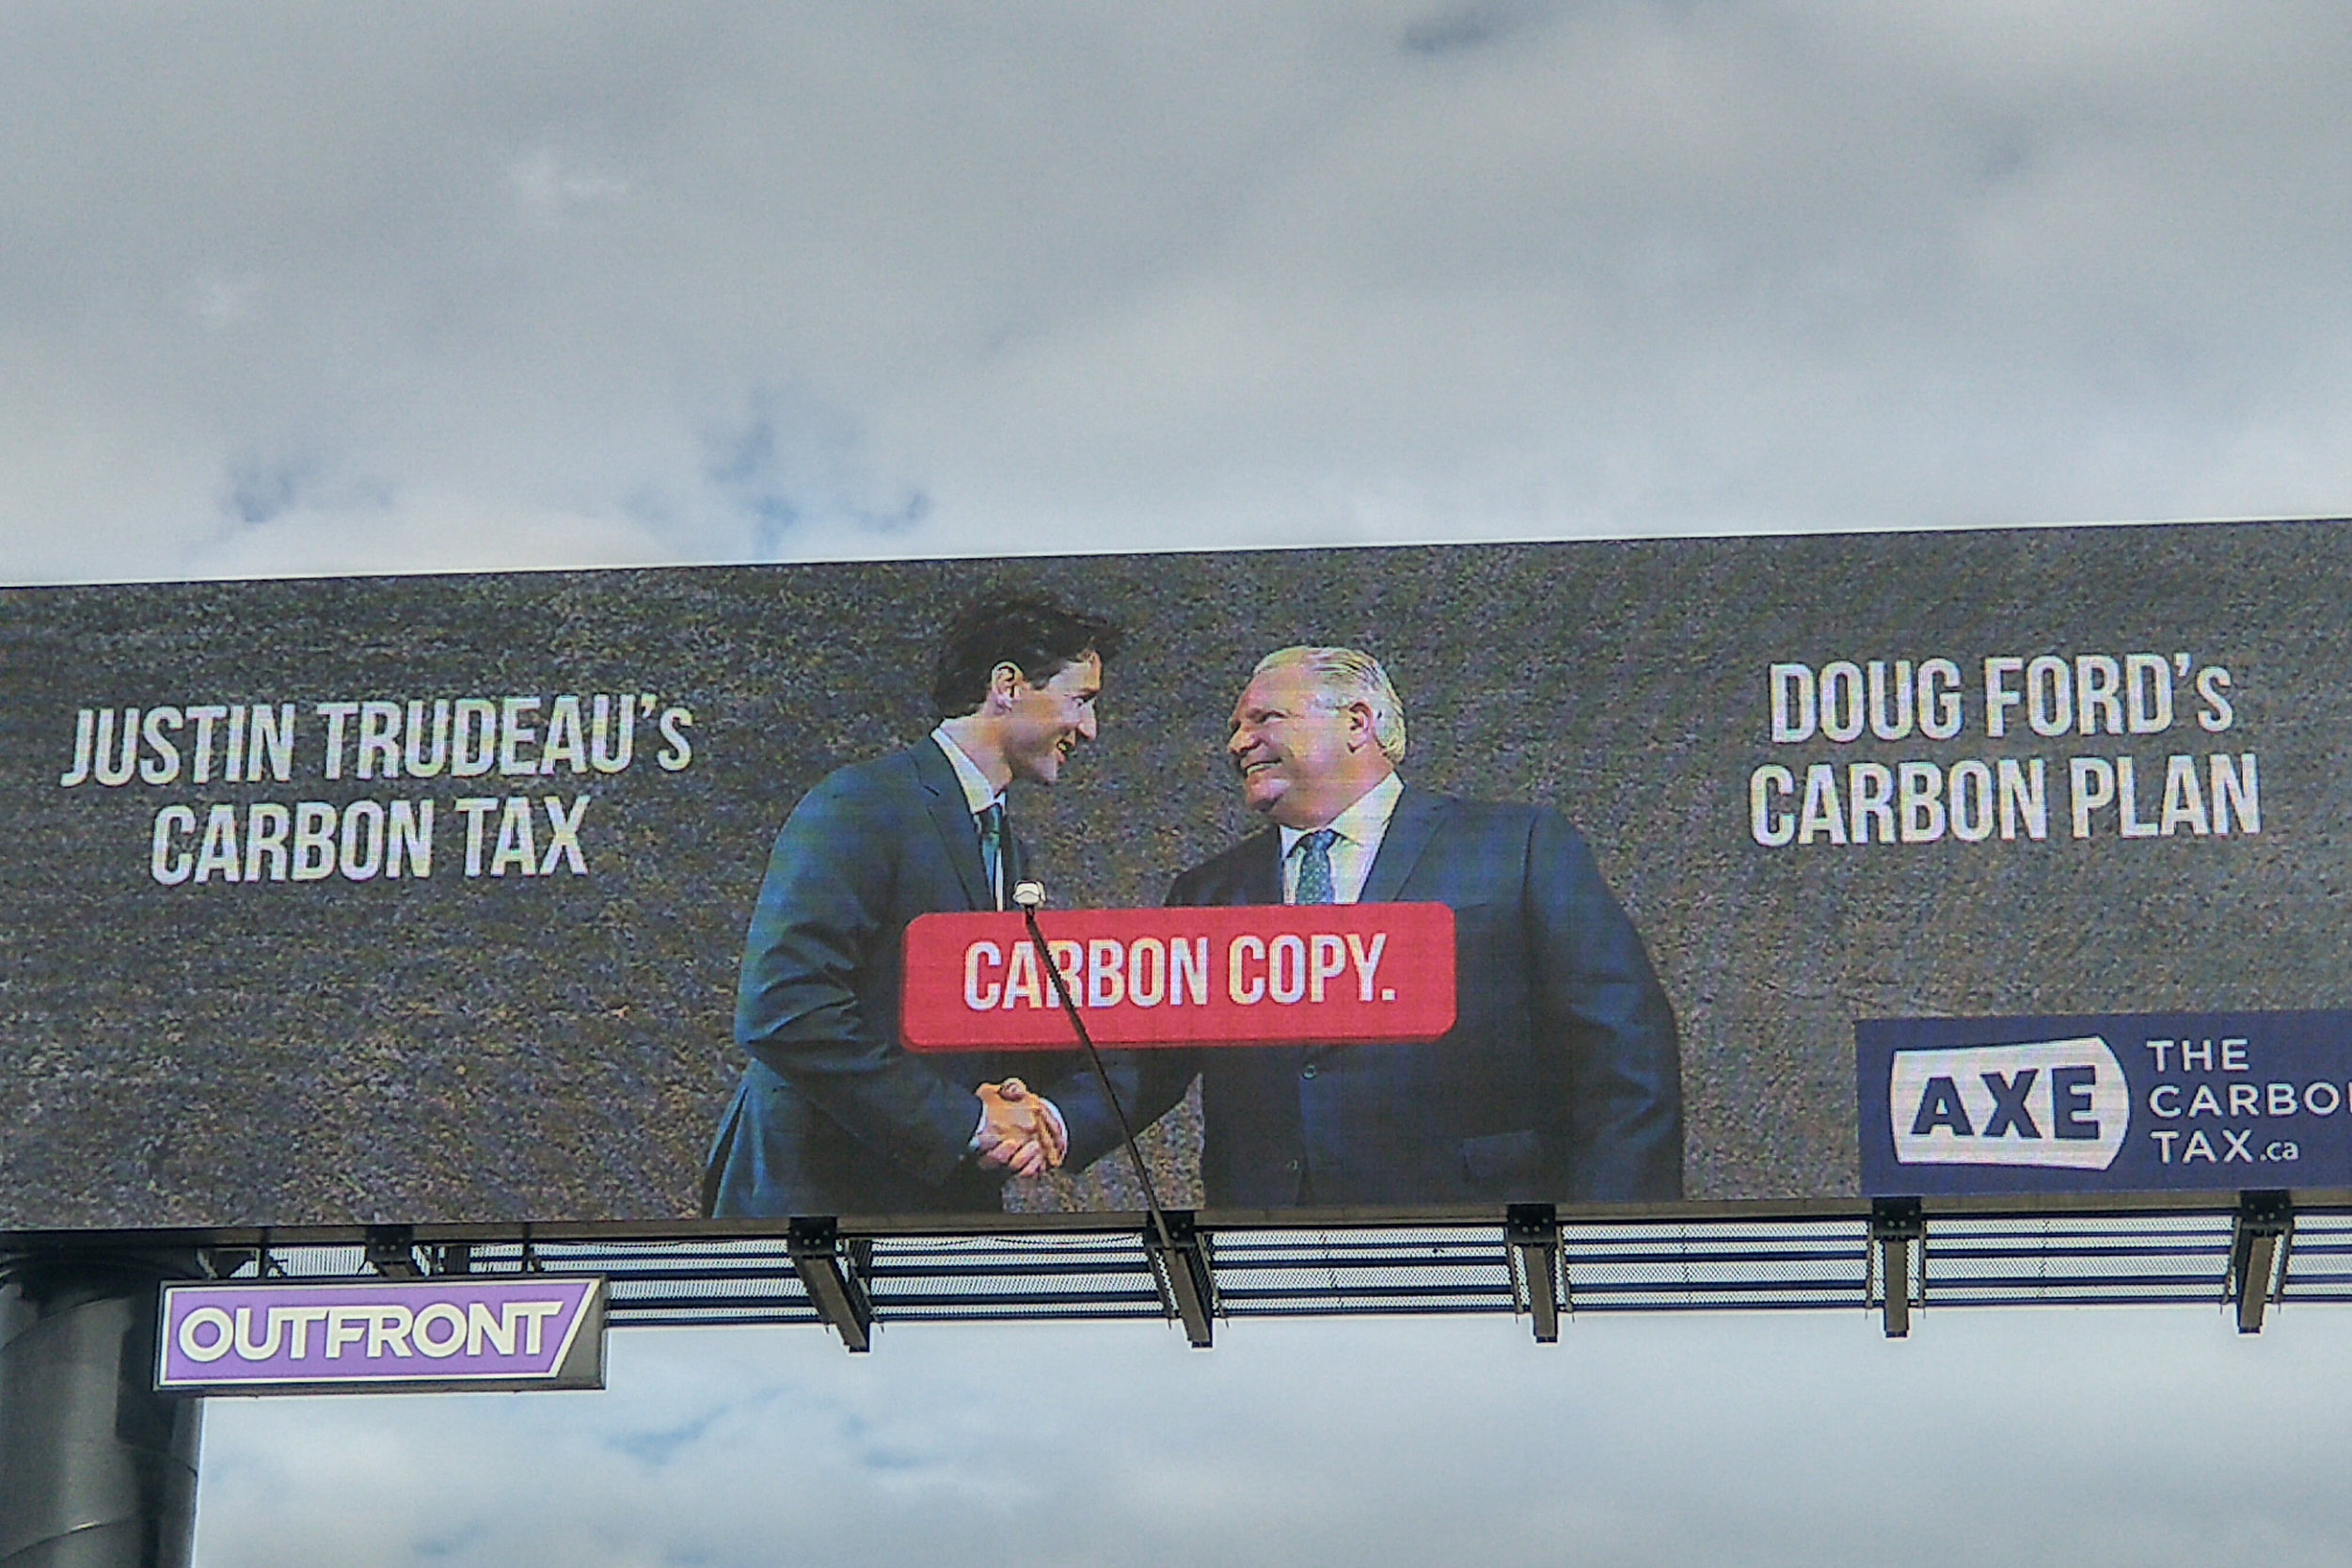 Catch the AxeTheCarbonTax.ca billboard on the Gardner at Dufferin street facing east.